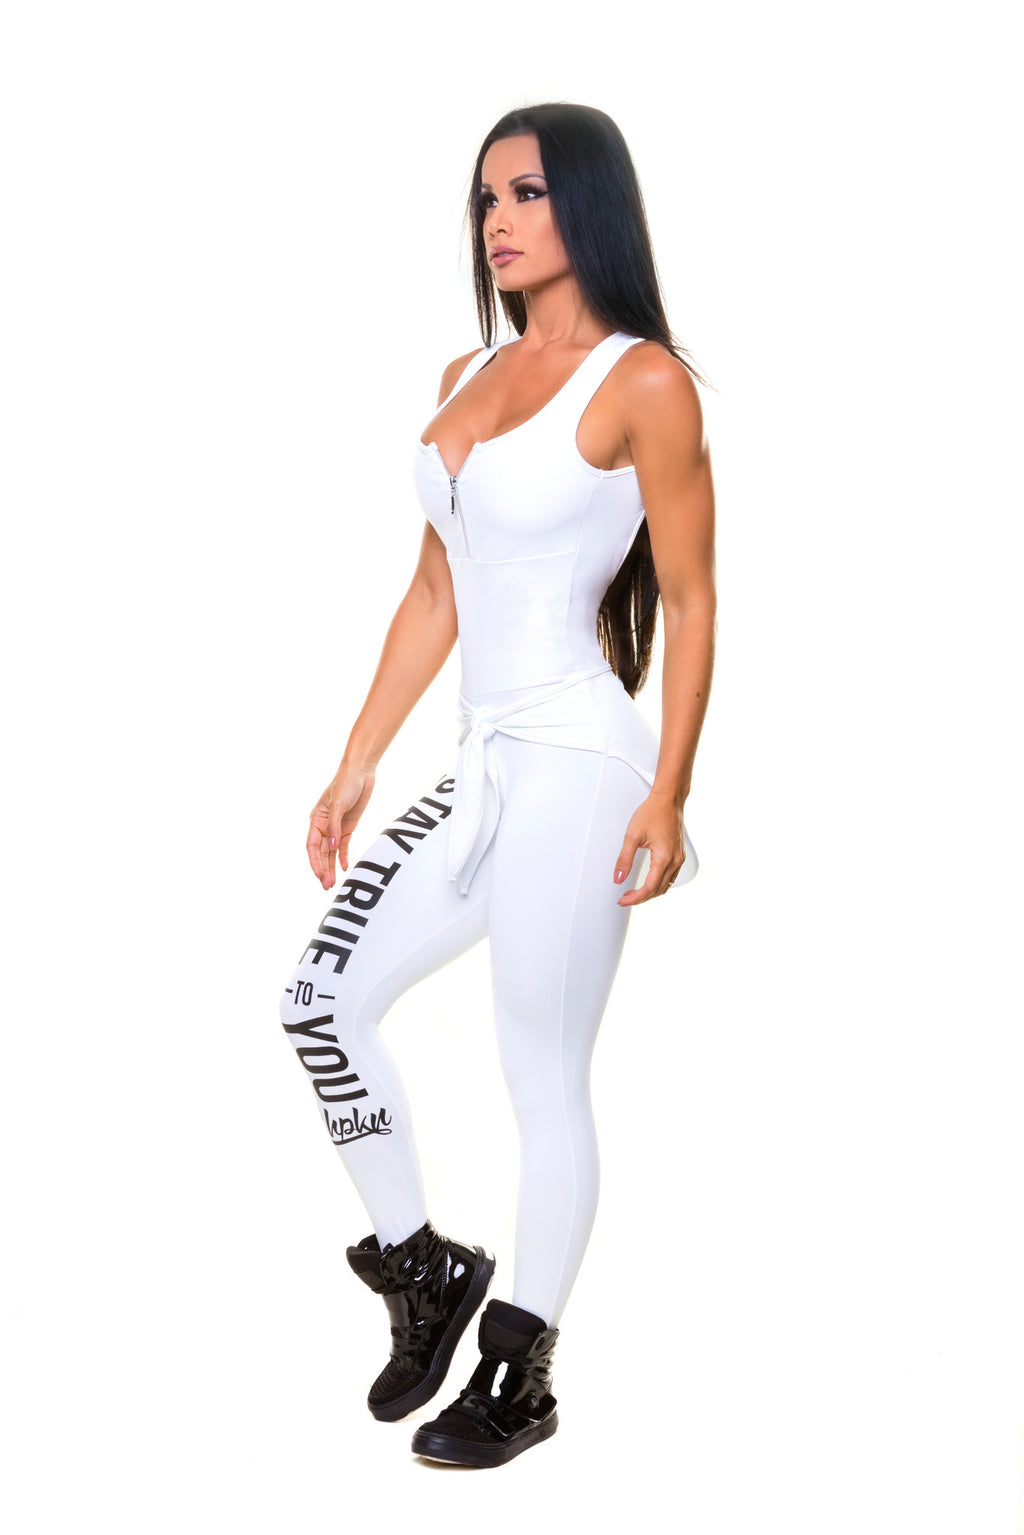 Colonna Brazilian Workout Jumpsuit - Bad Girl Fitness